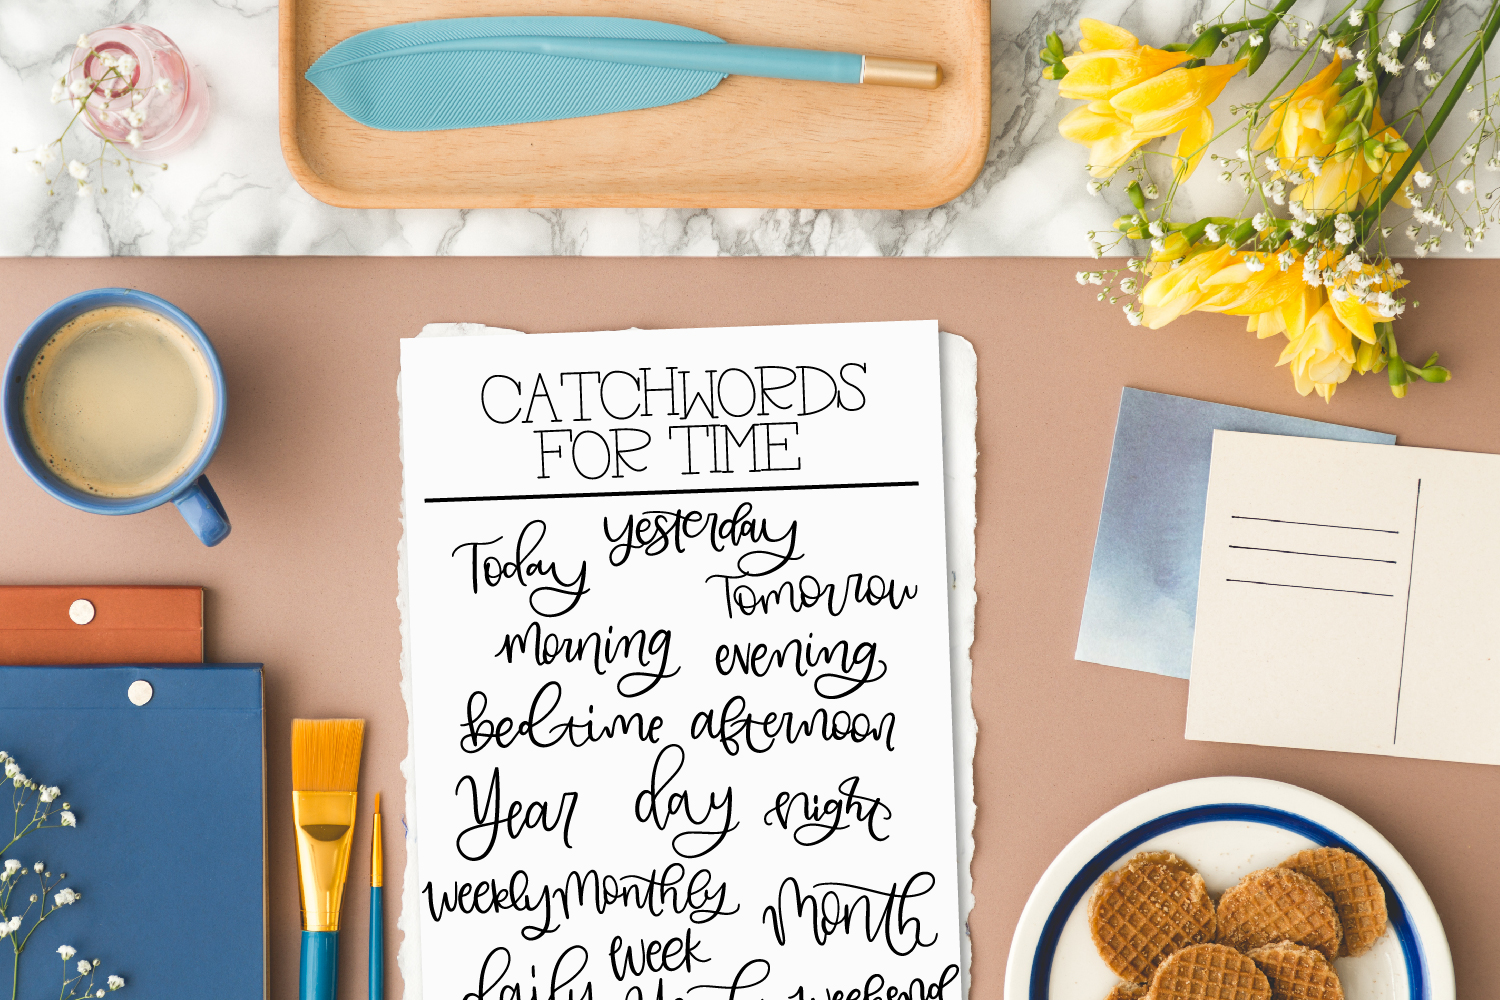 Planner Catchwords - Over 100 Catchwords In Font Form example image 8